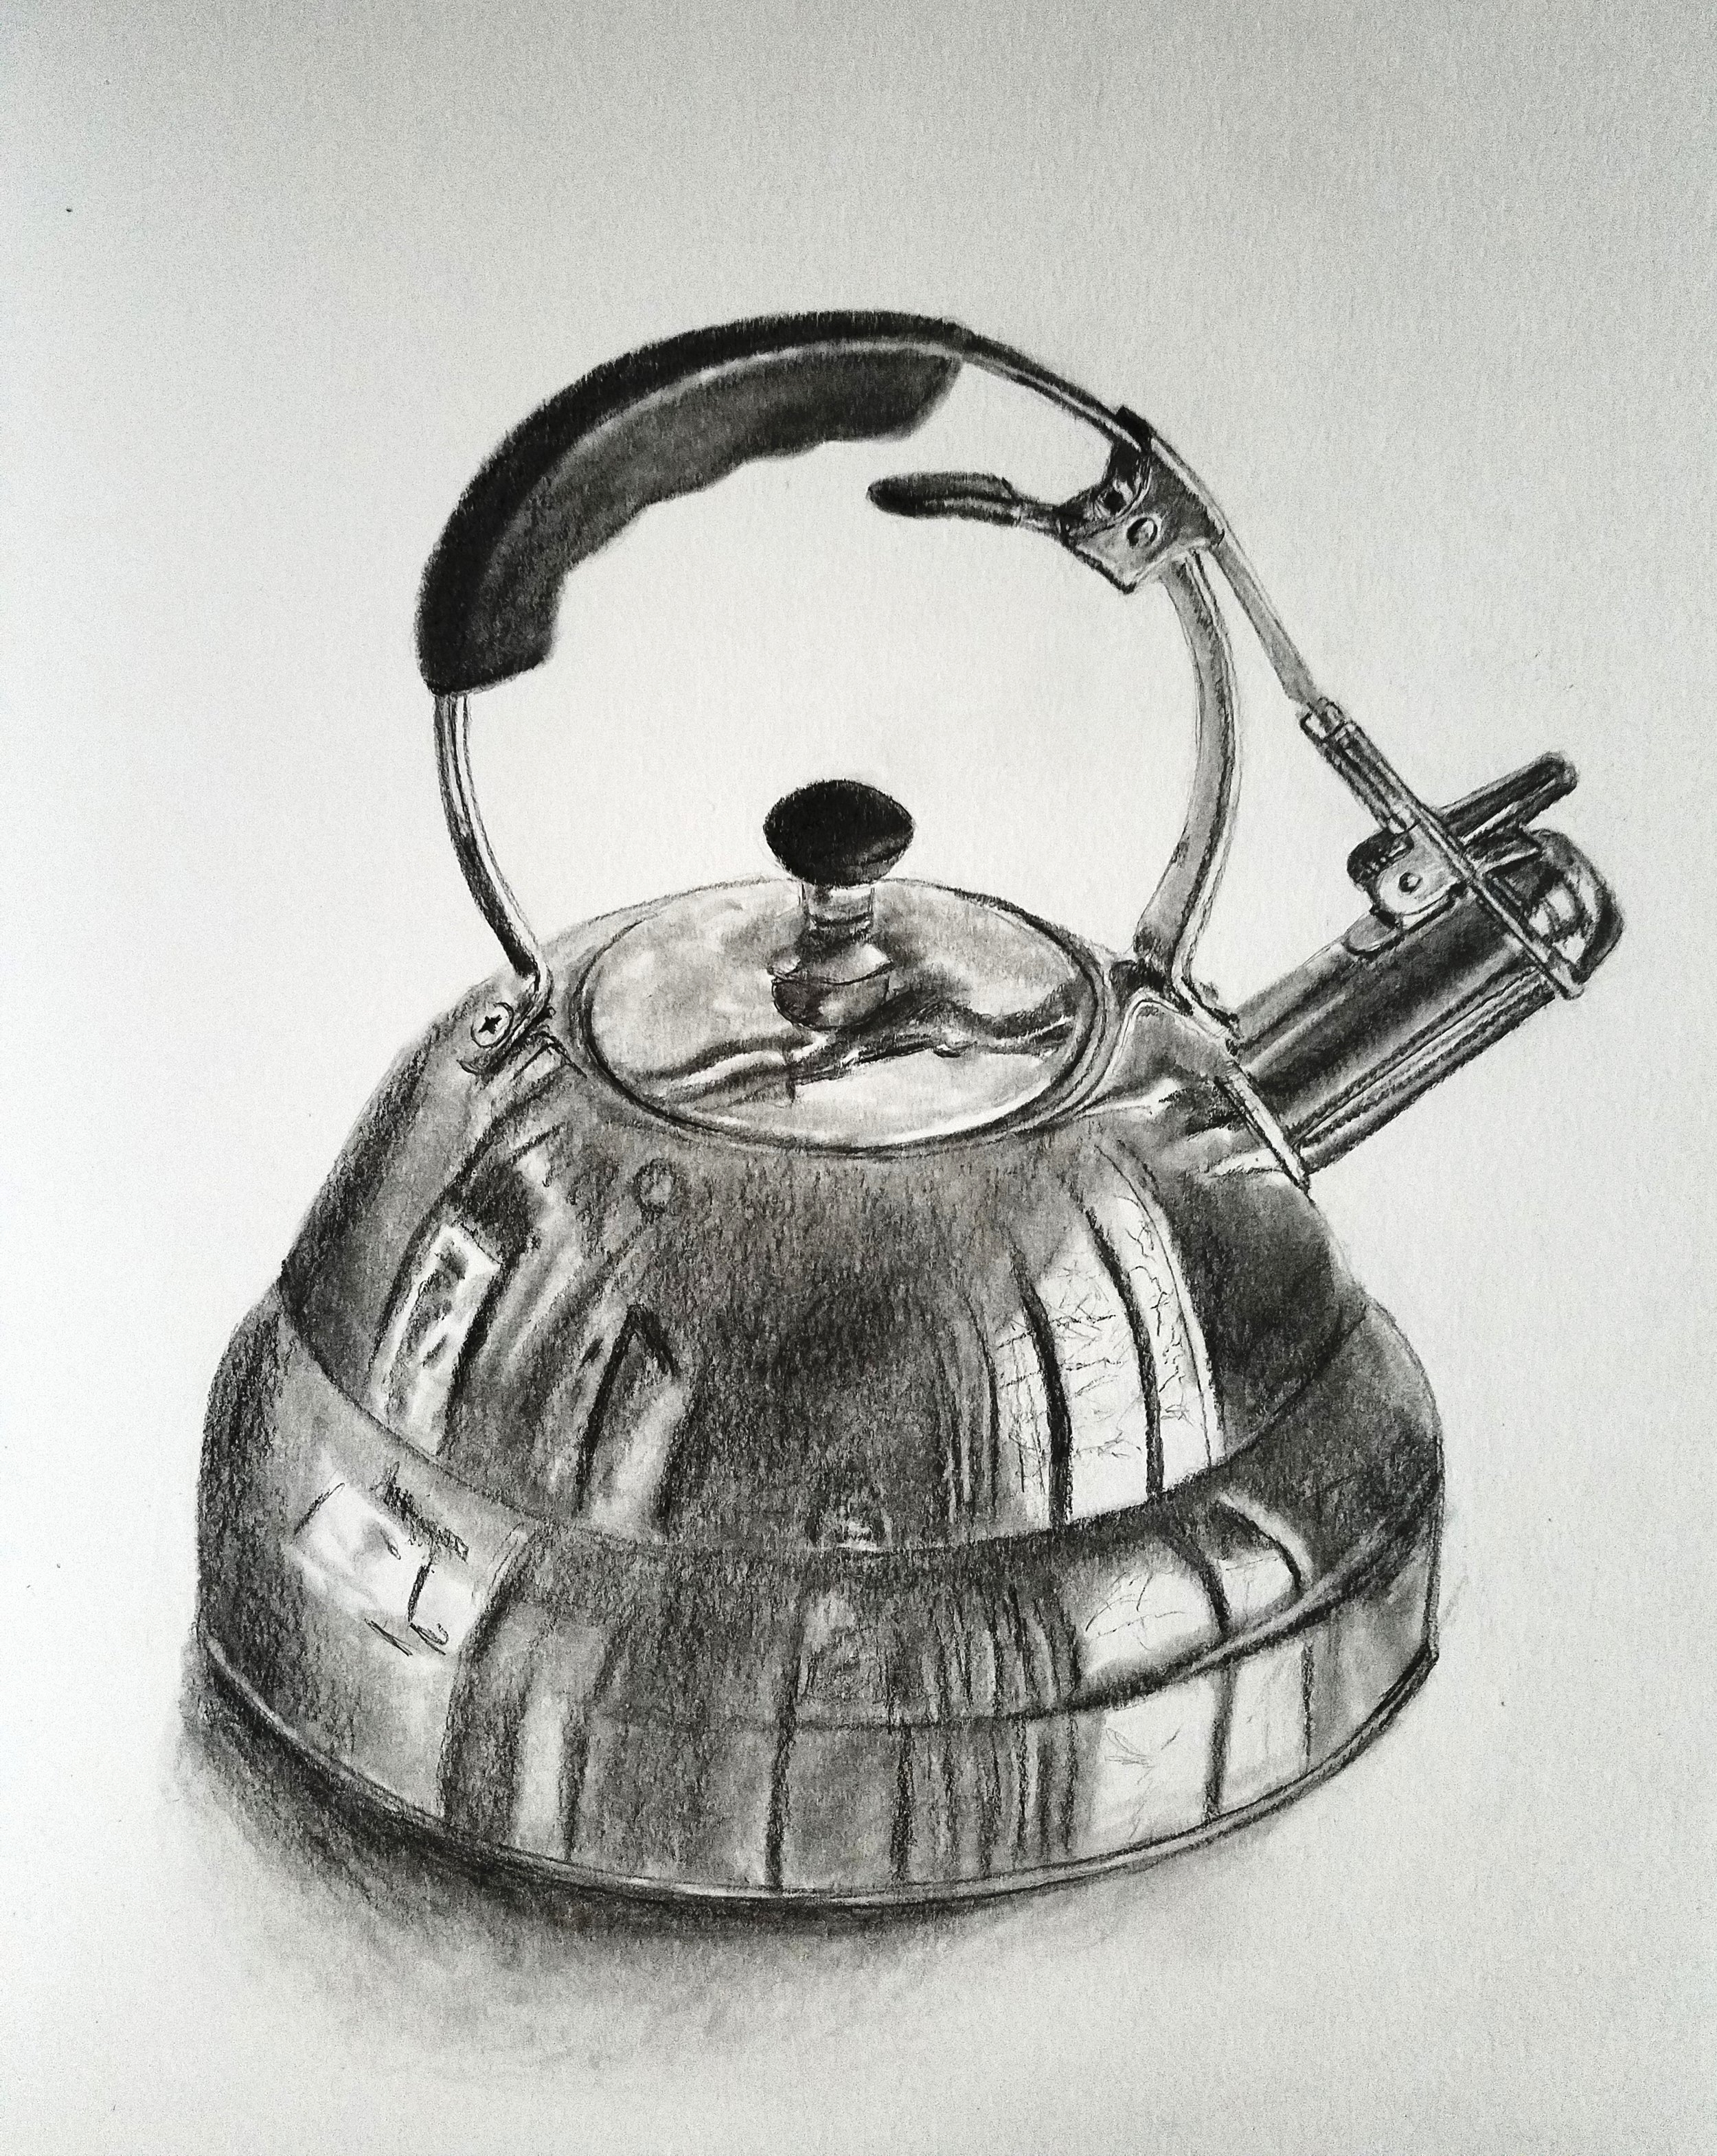 Tea Kettle; graphite; 2018